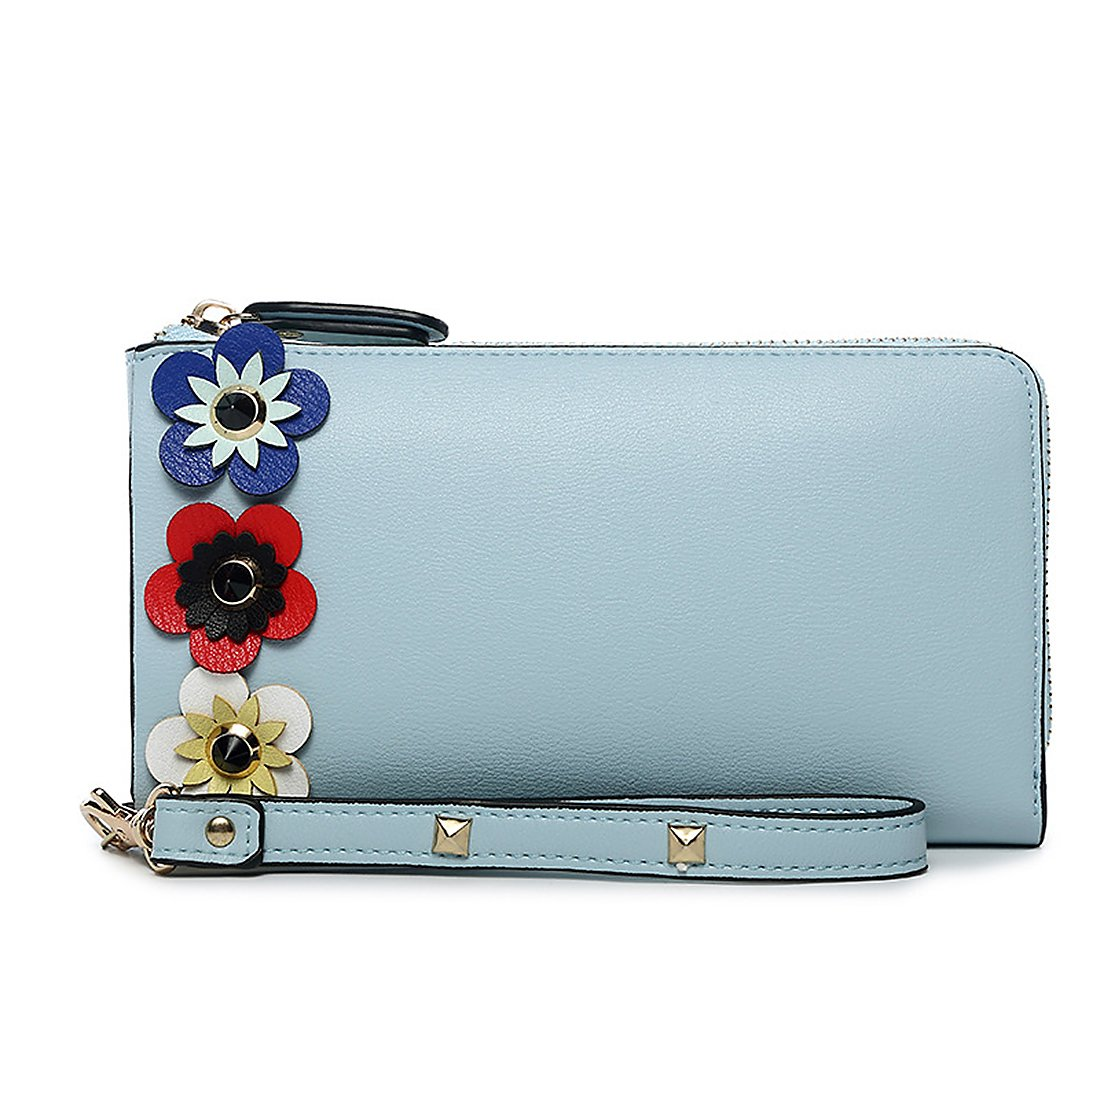 Badiya Flowers Women's Long Leather Card Holder Purse Cellphone Wristlet Wallet